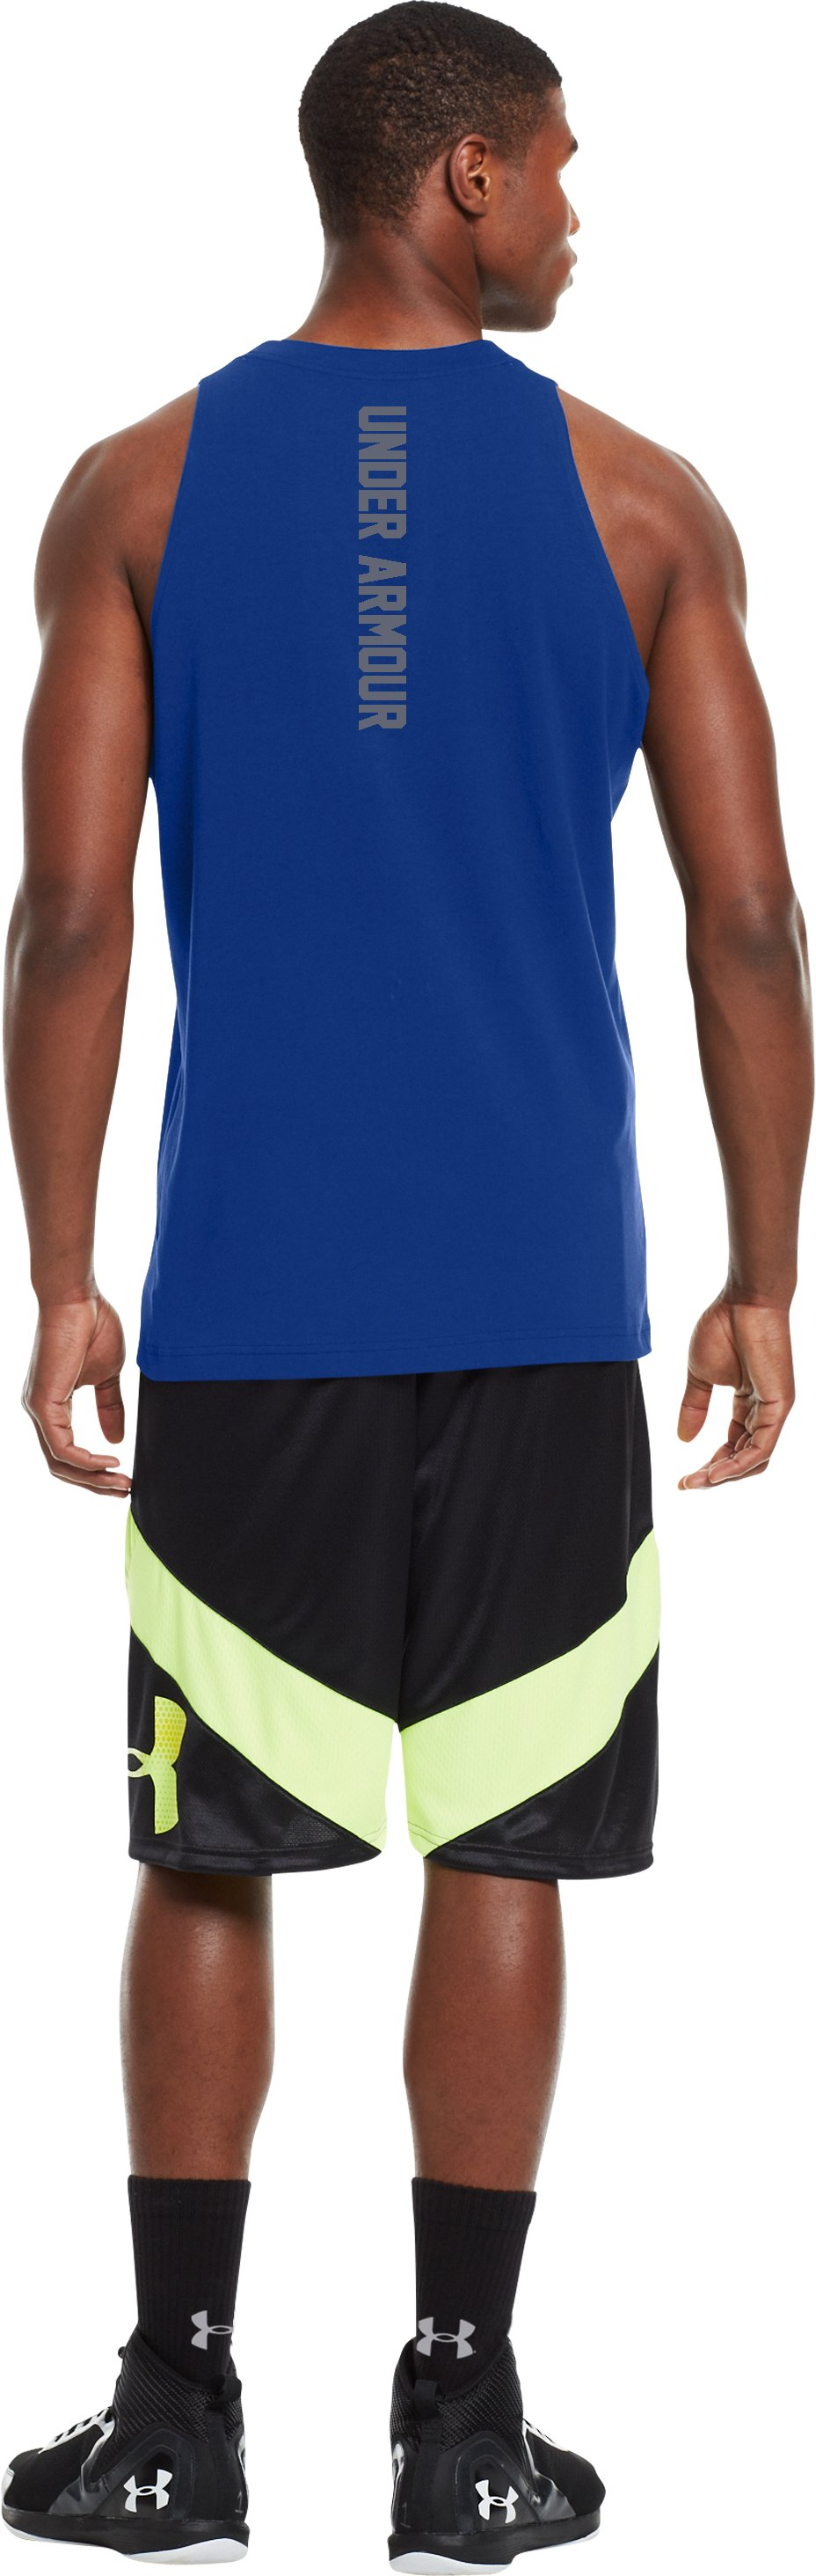 Men's Charged Cotton® Tank, Royal, Back